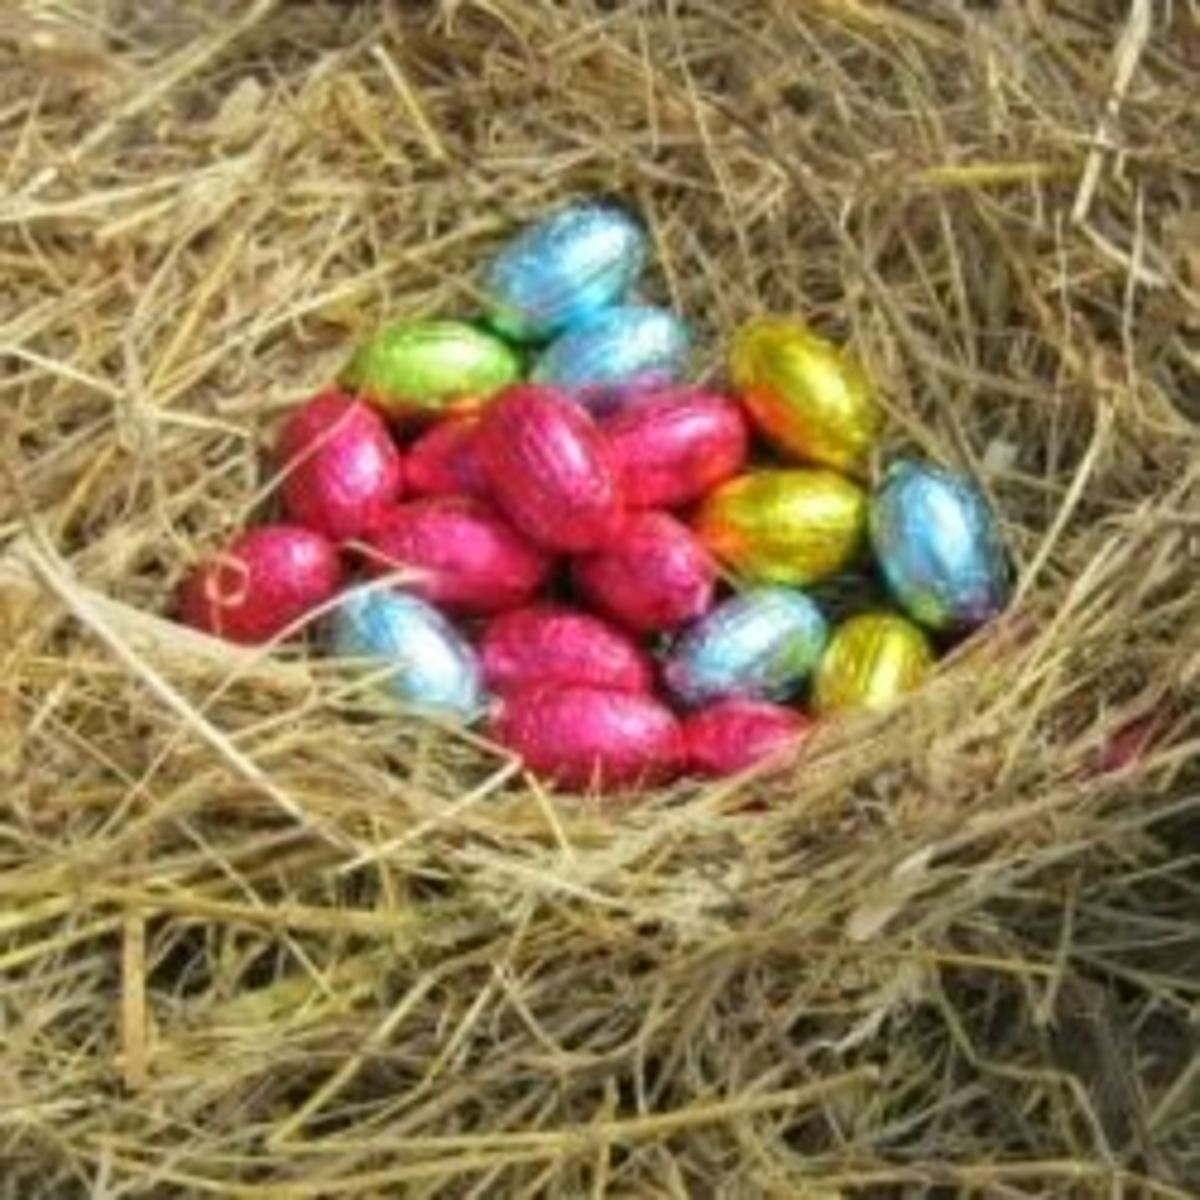 Chocolate Easter eggs in a real bird's nest